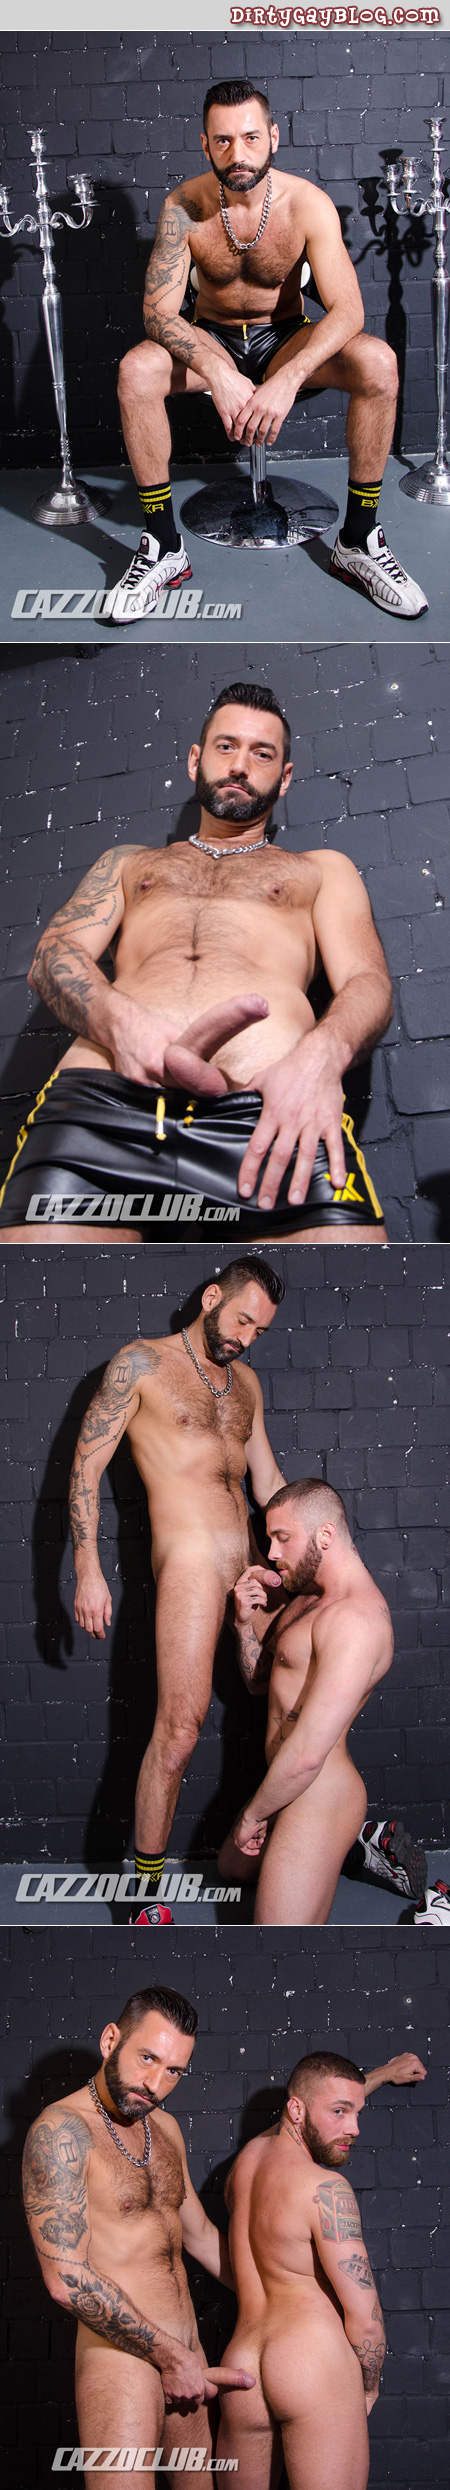 Bearded men in leather shorts having sex in an alley.